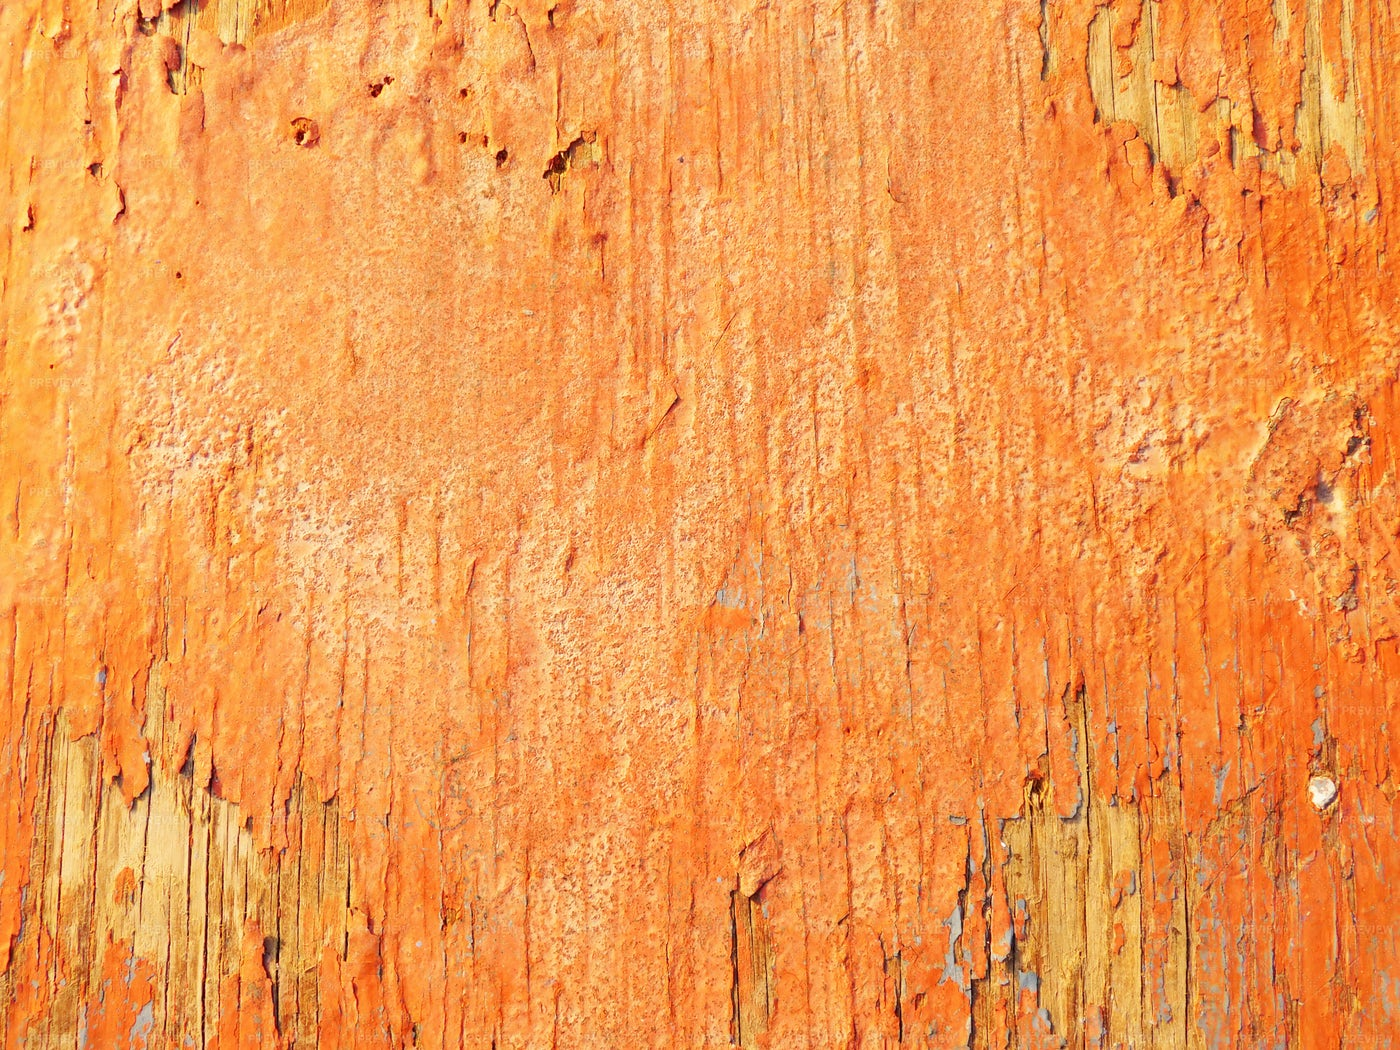 Wood Painted Texture: Stock Photos